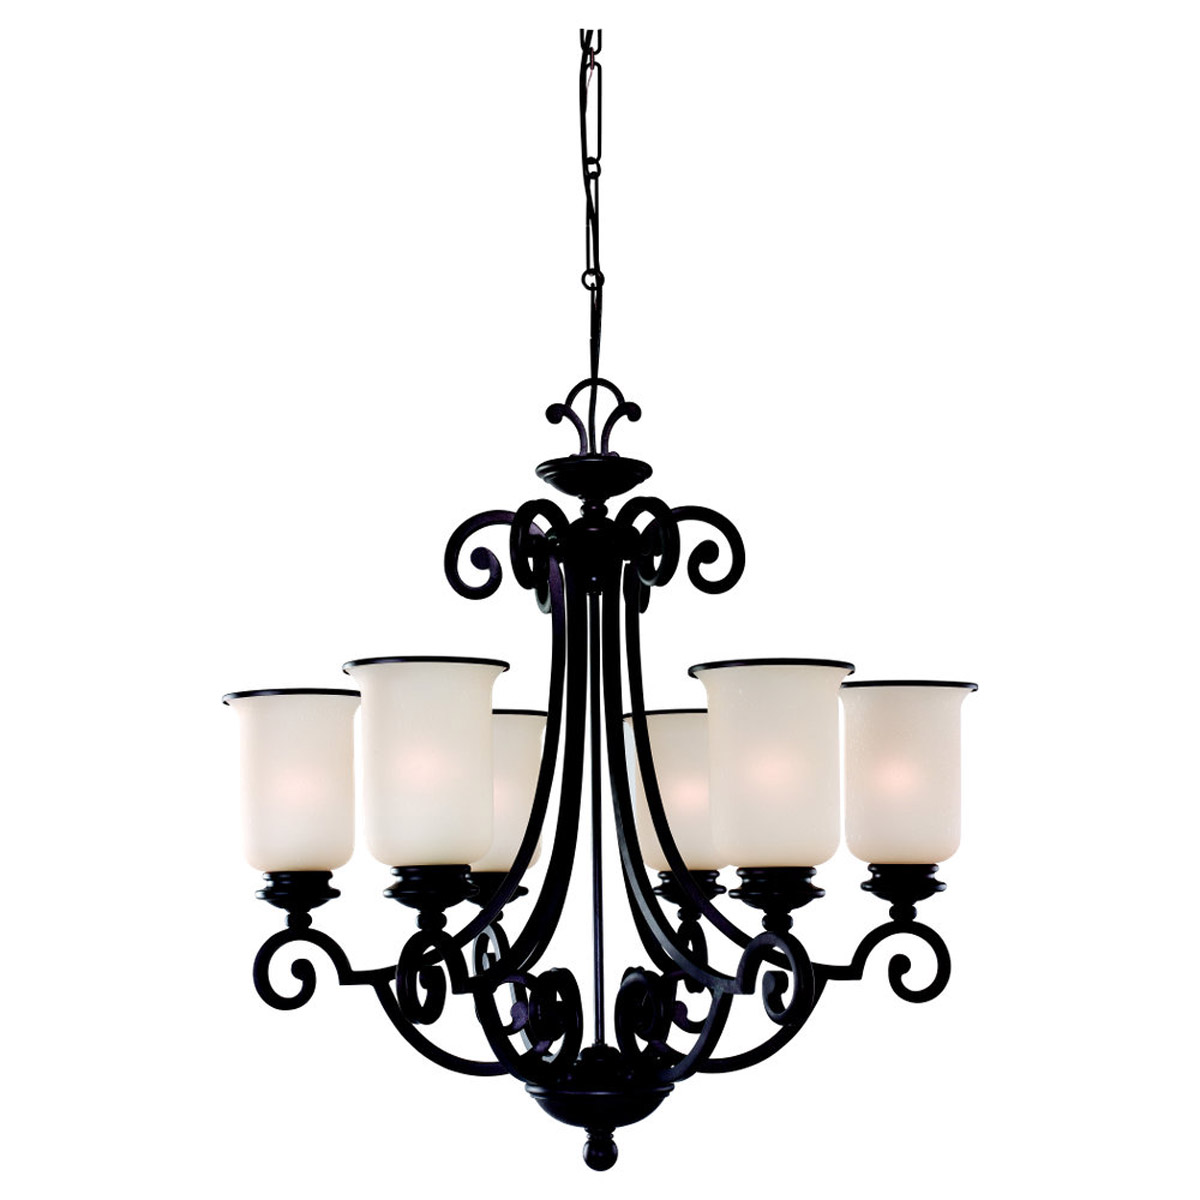 Sea Gull Lighting Acadia 6 Light Chandelier in Misted Bronze 31146BLE-814